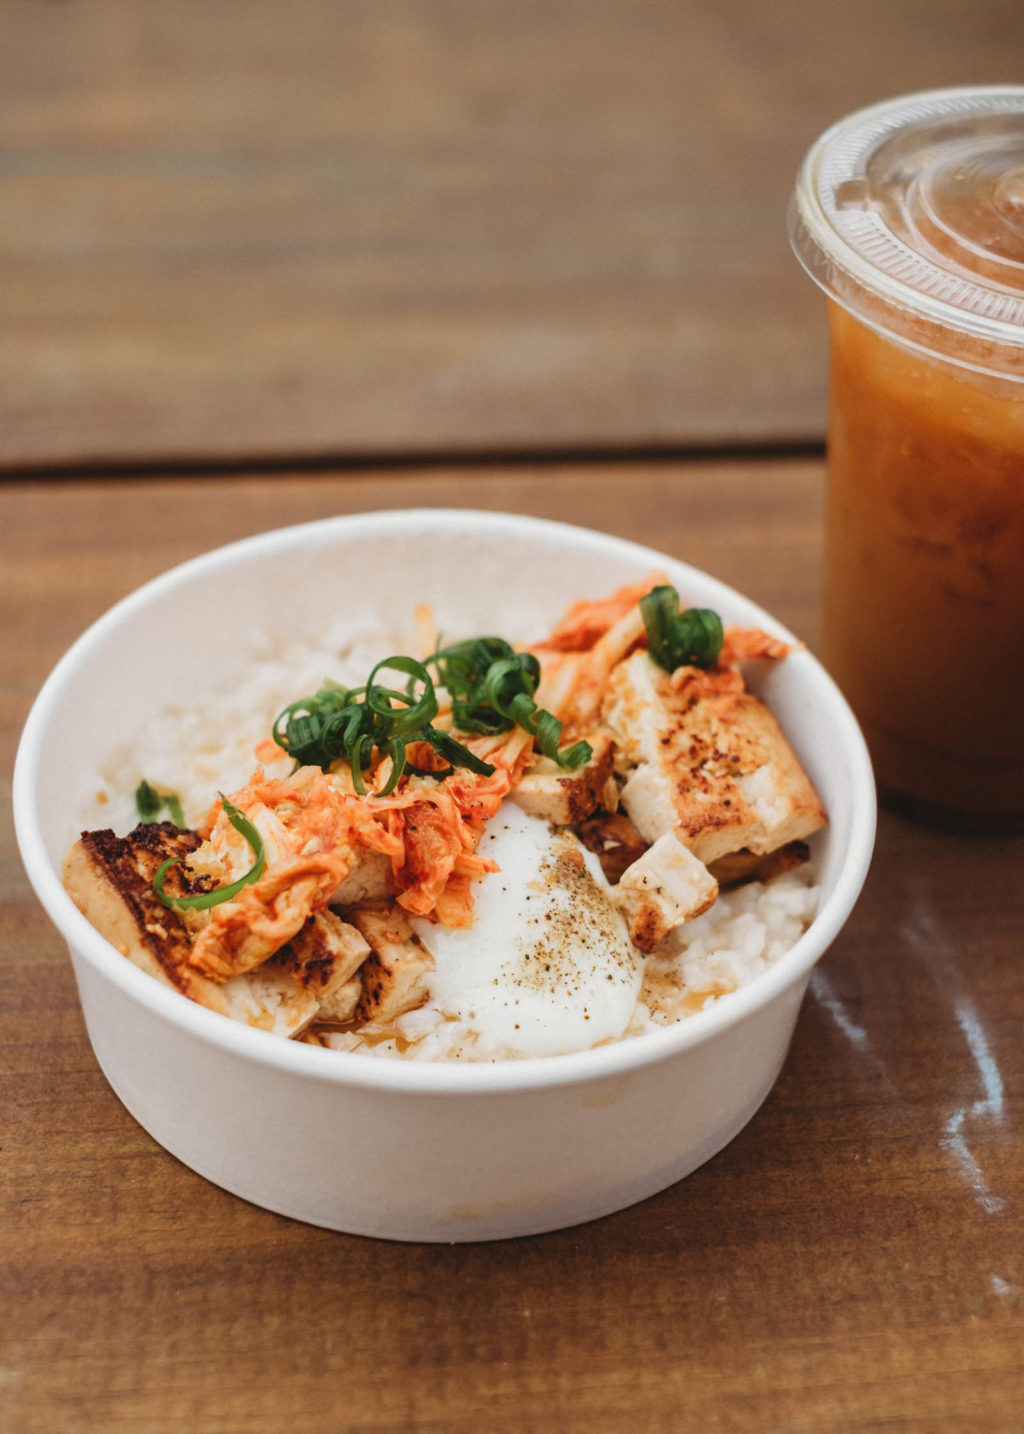 Brown Rice Porridge and Iced Joe Horchatte from My Name is Joe Coffee Co. in Austin, TX